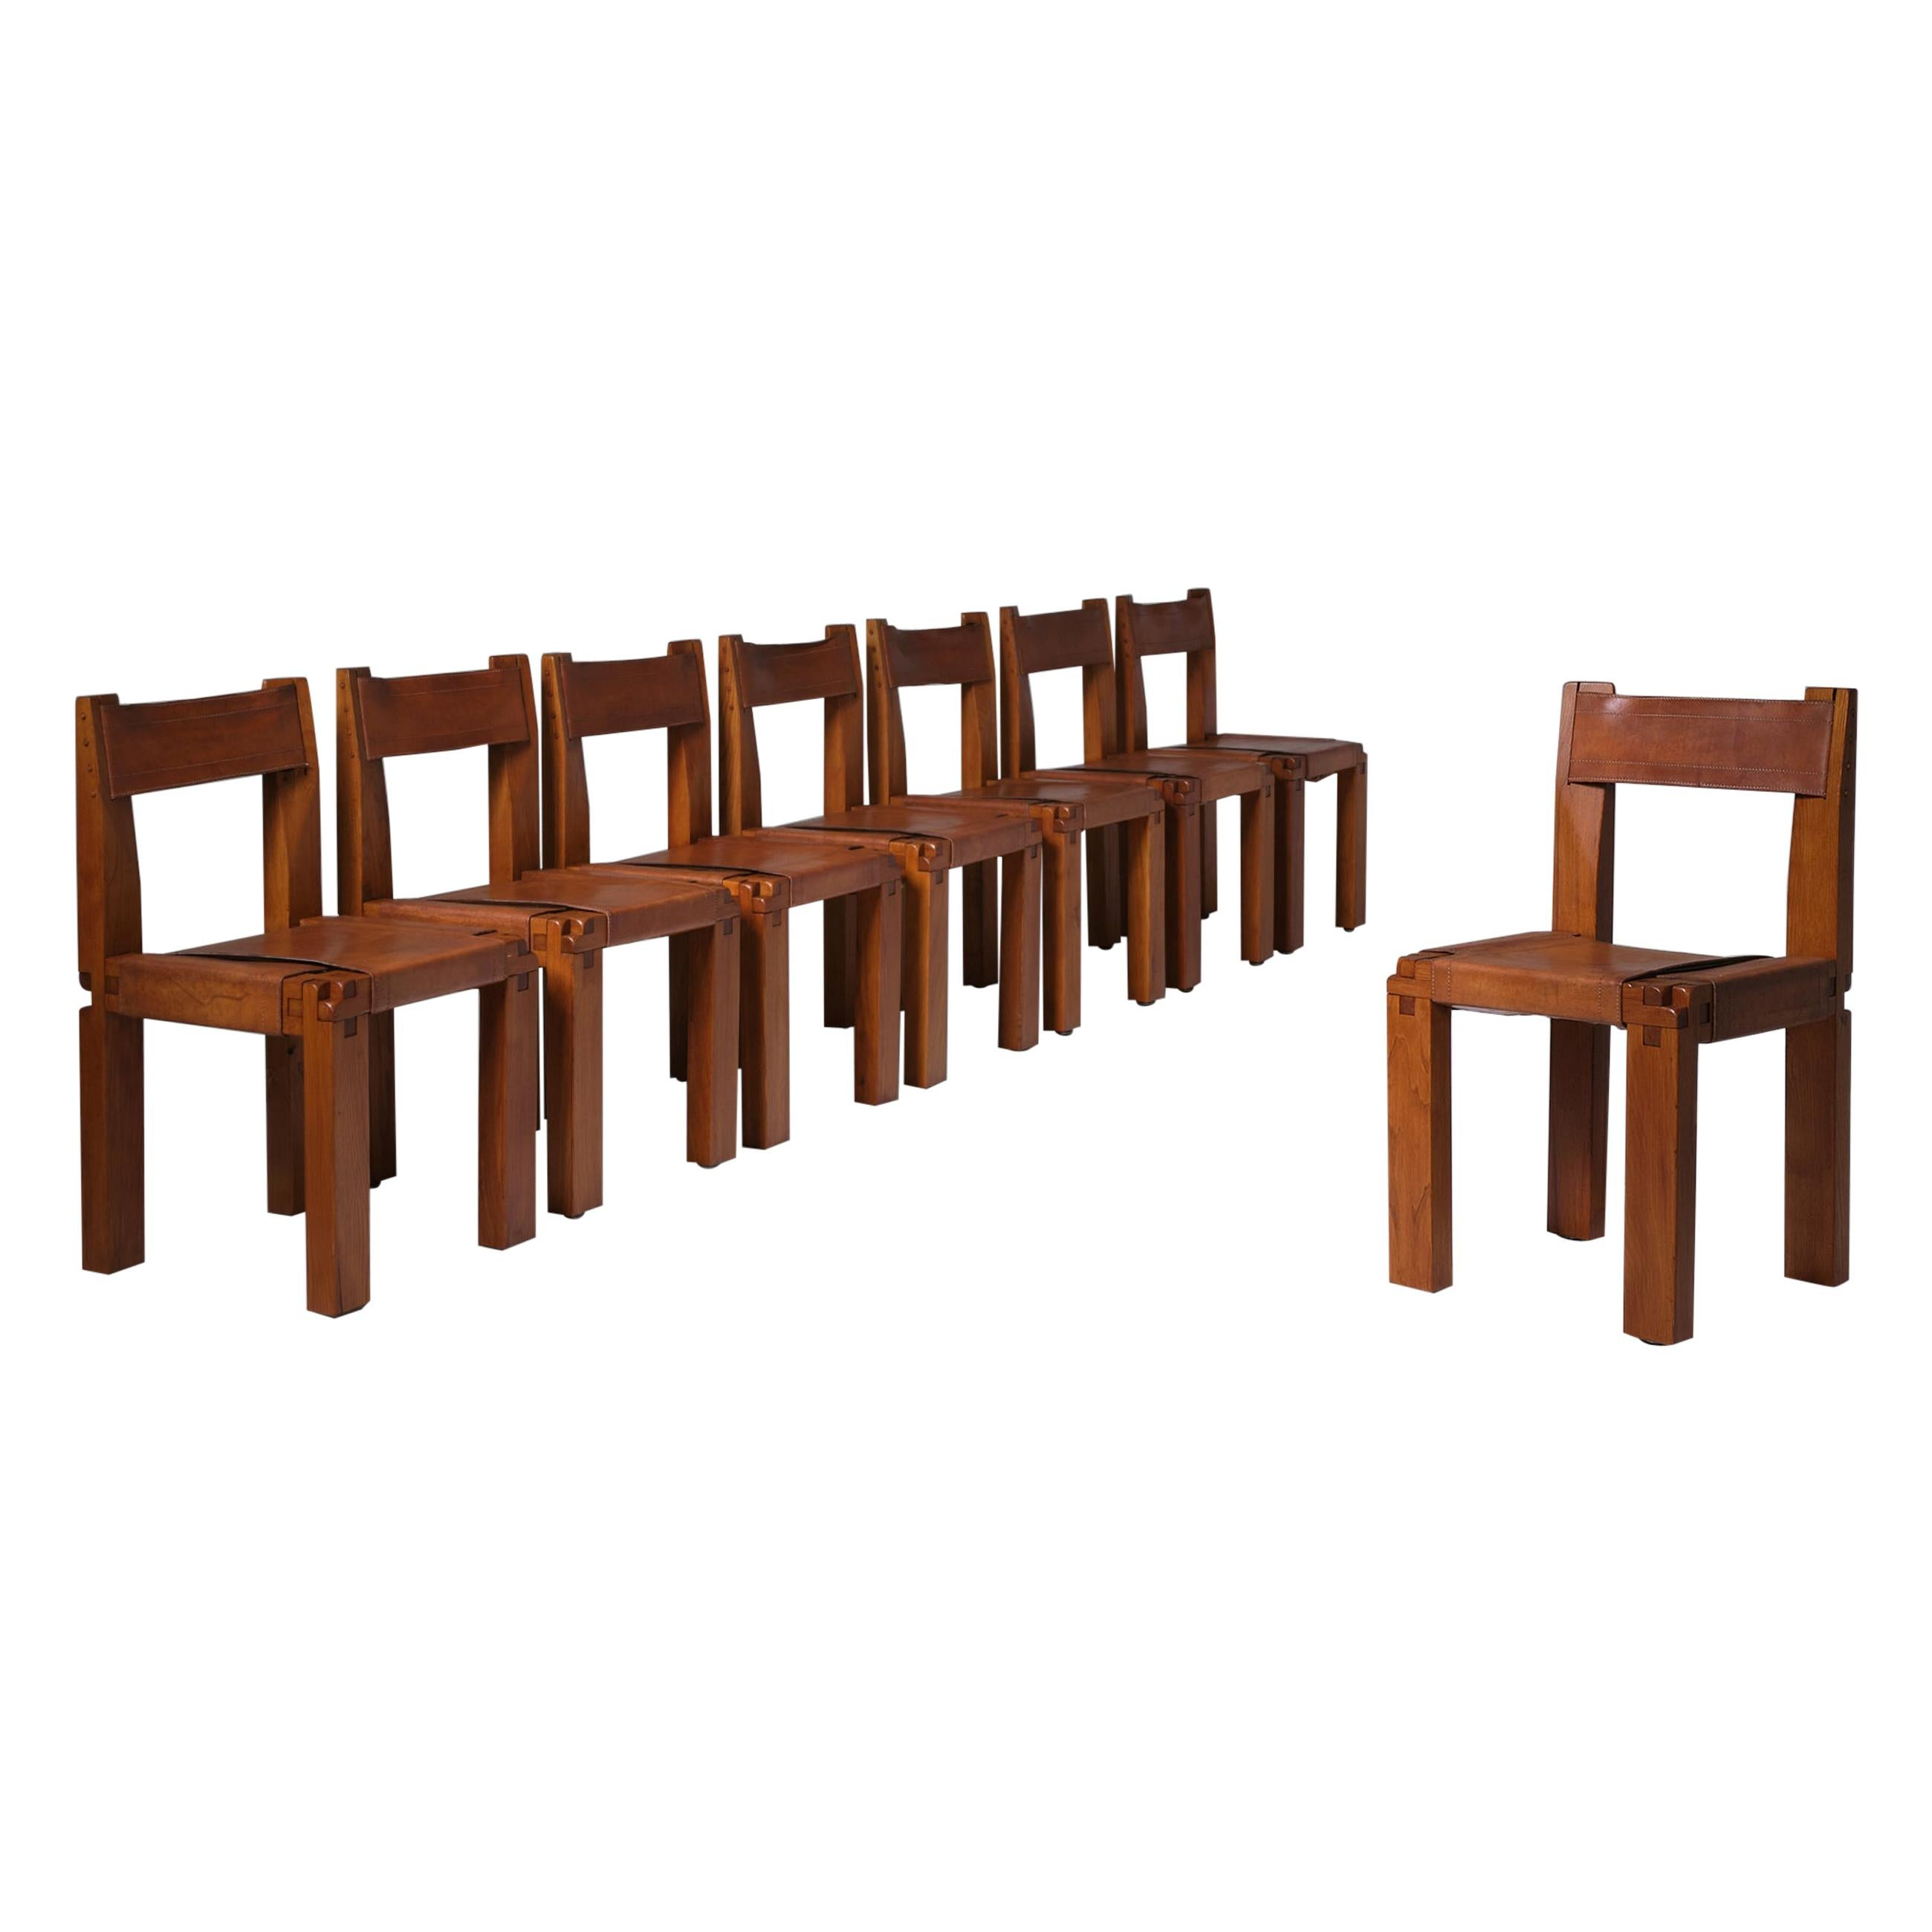 Pierre Chapo 'S11' Chairs in Solid Elm & Leather, Set of 8